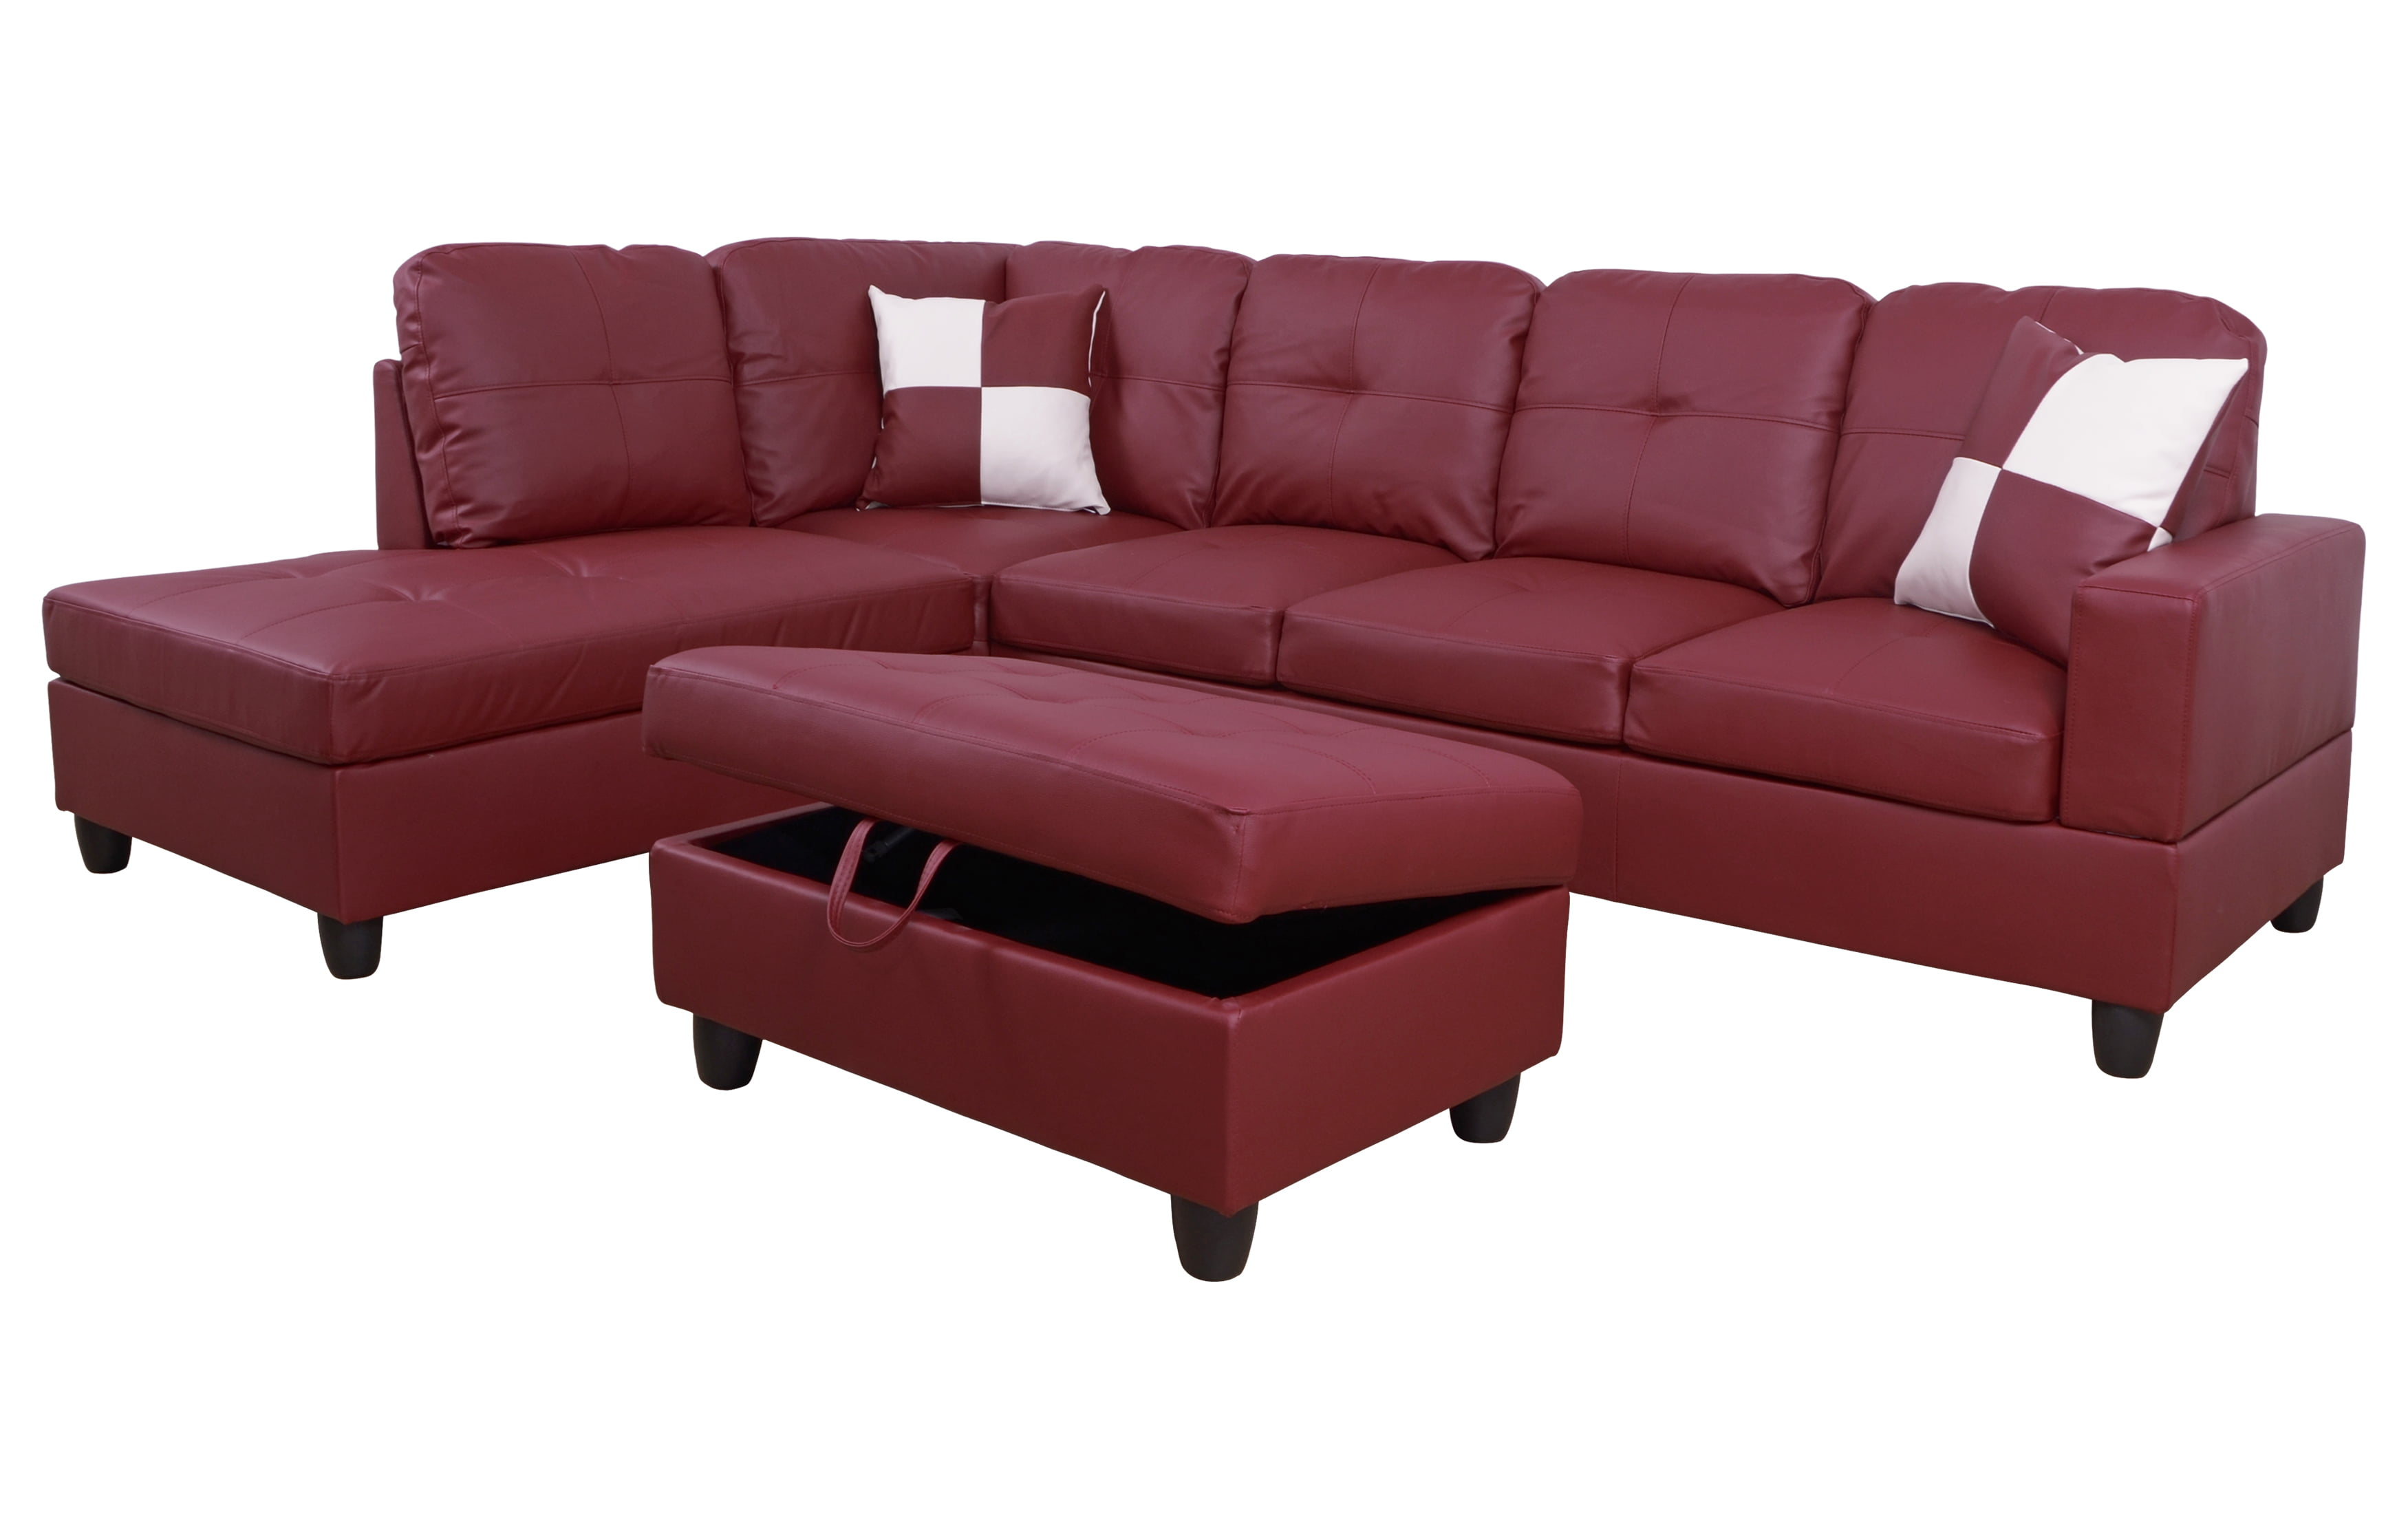 AYCP Furniture L-Shape Traditional Sectional Sofa Set with Ottoman, Left  Hand Facing Chaise, Faux Leather Upholstery Material, Red Color, More ...